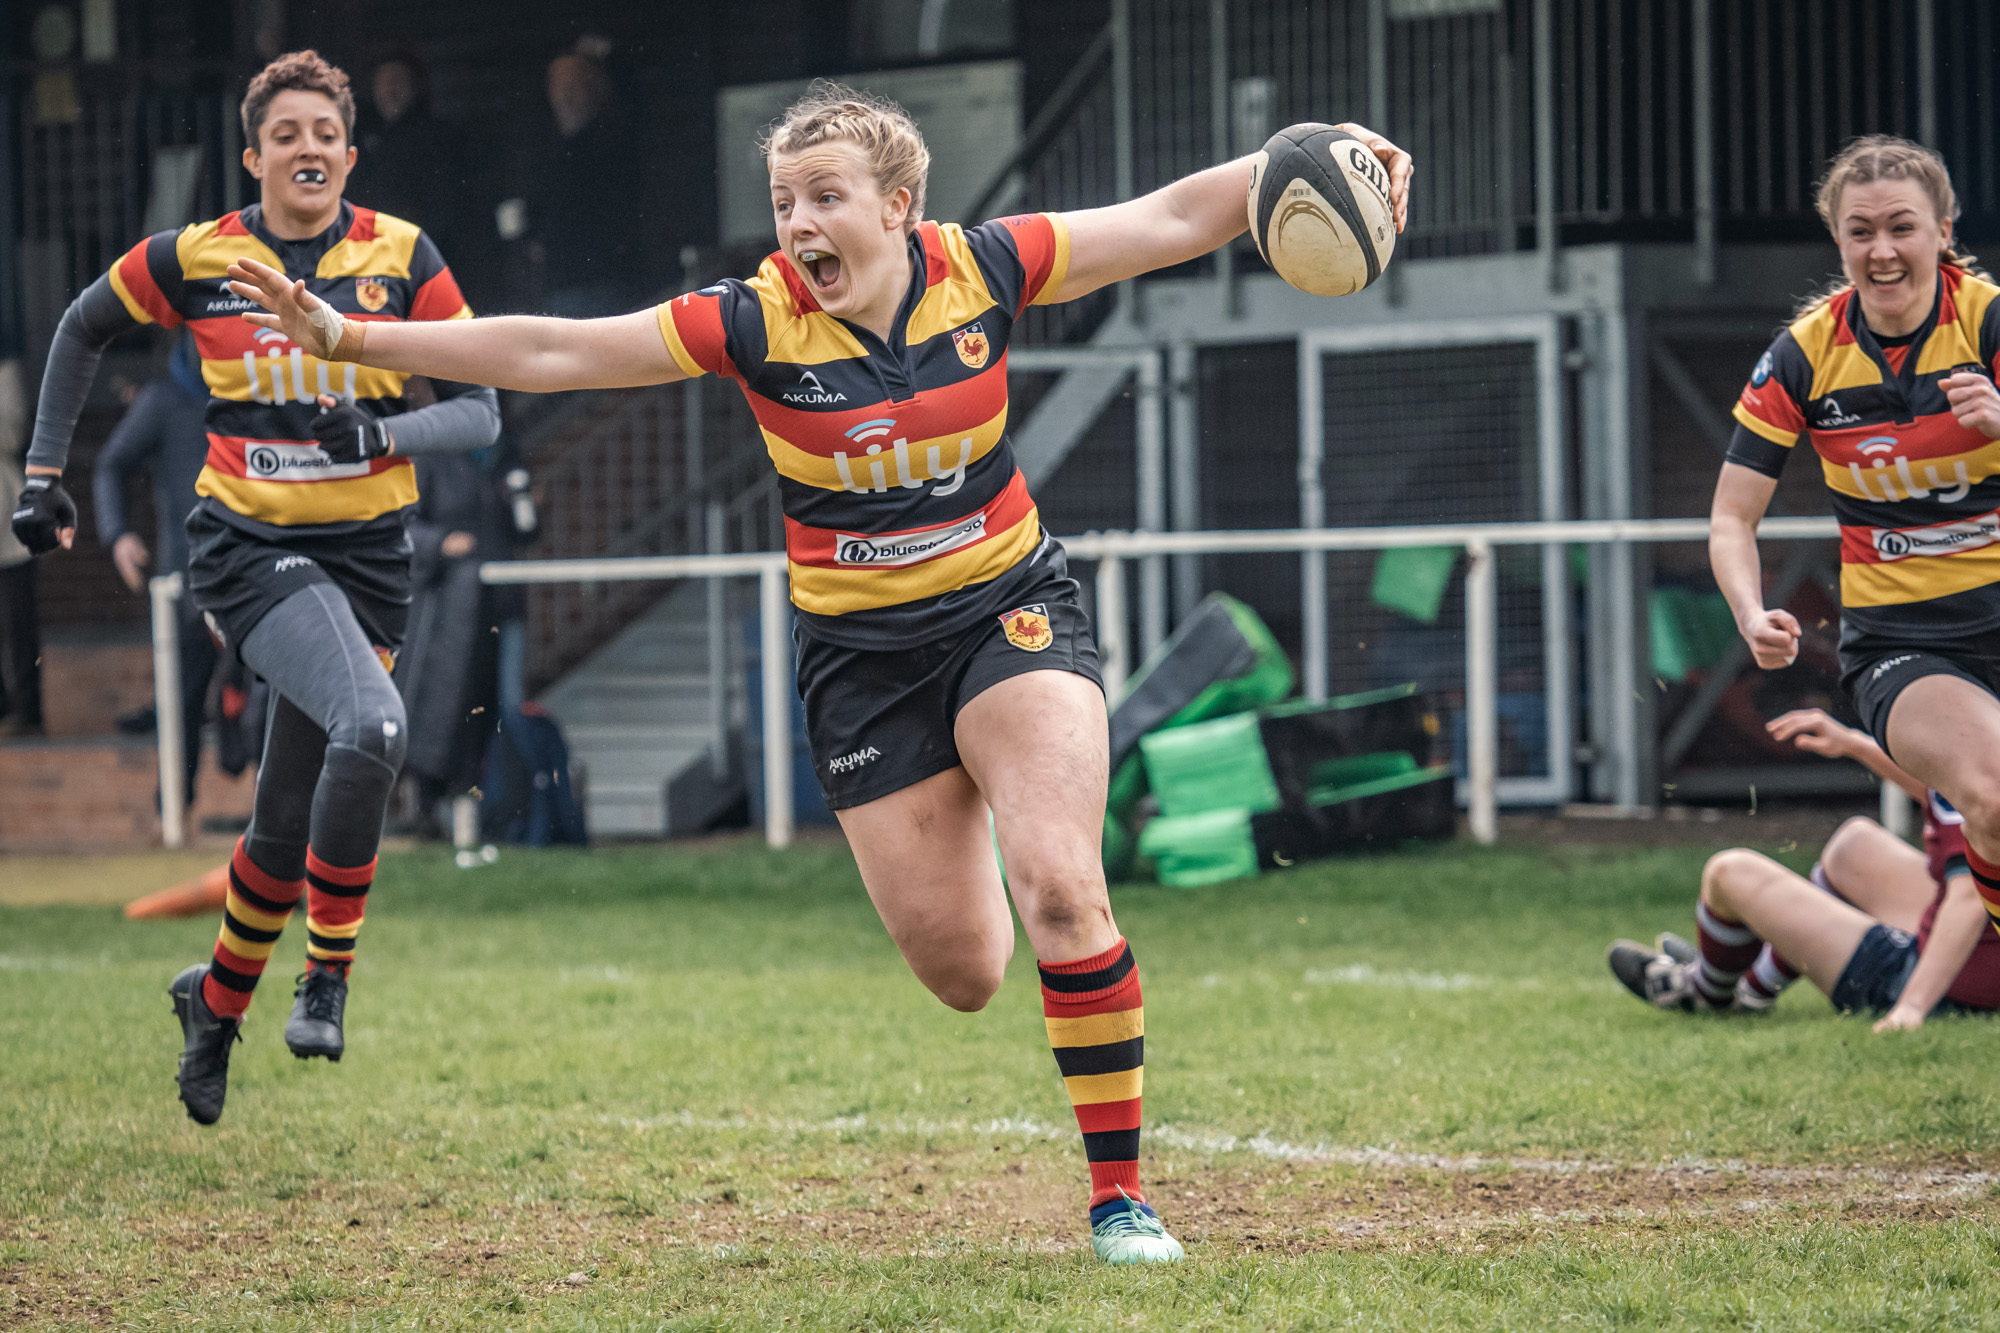 Harrogate Ladies: This picture of Alex Wallace scoring joyfully in the promotion play-off game against Bletchley has won a prize as DHL's rugby moment of the month, judged by England's Rachael Burford and GB 7's James Rodwell